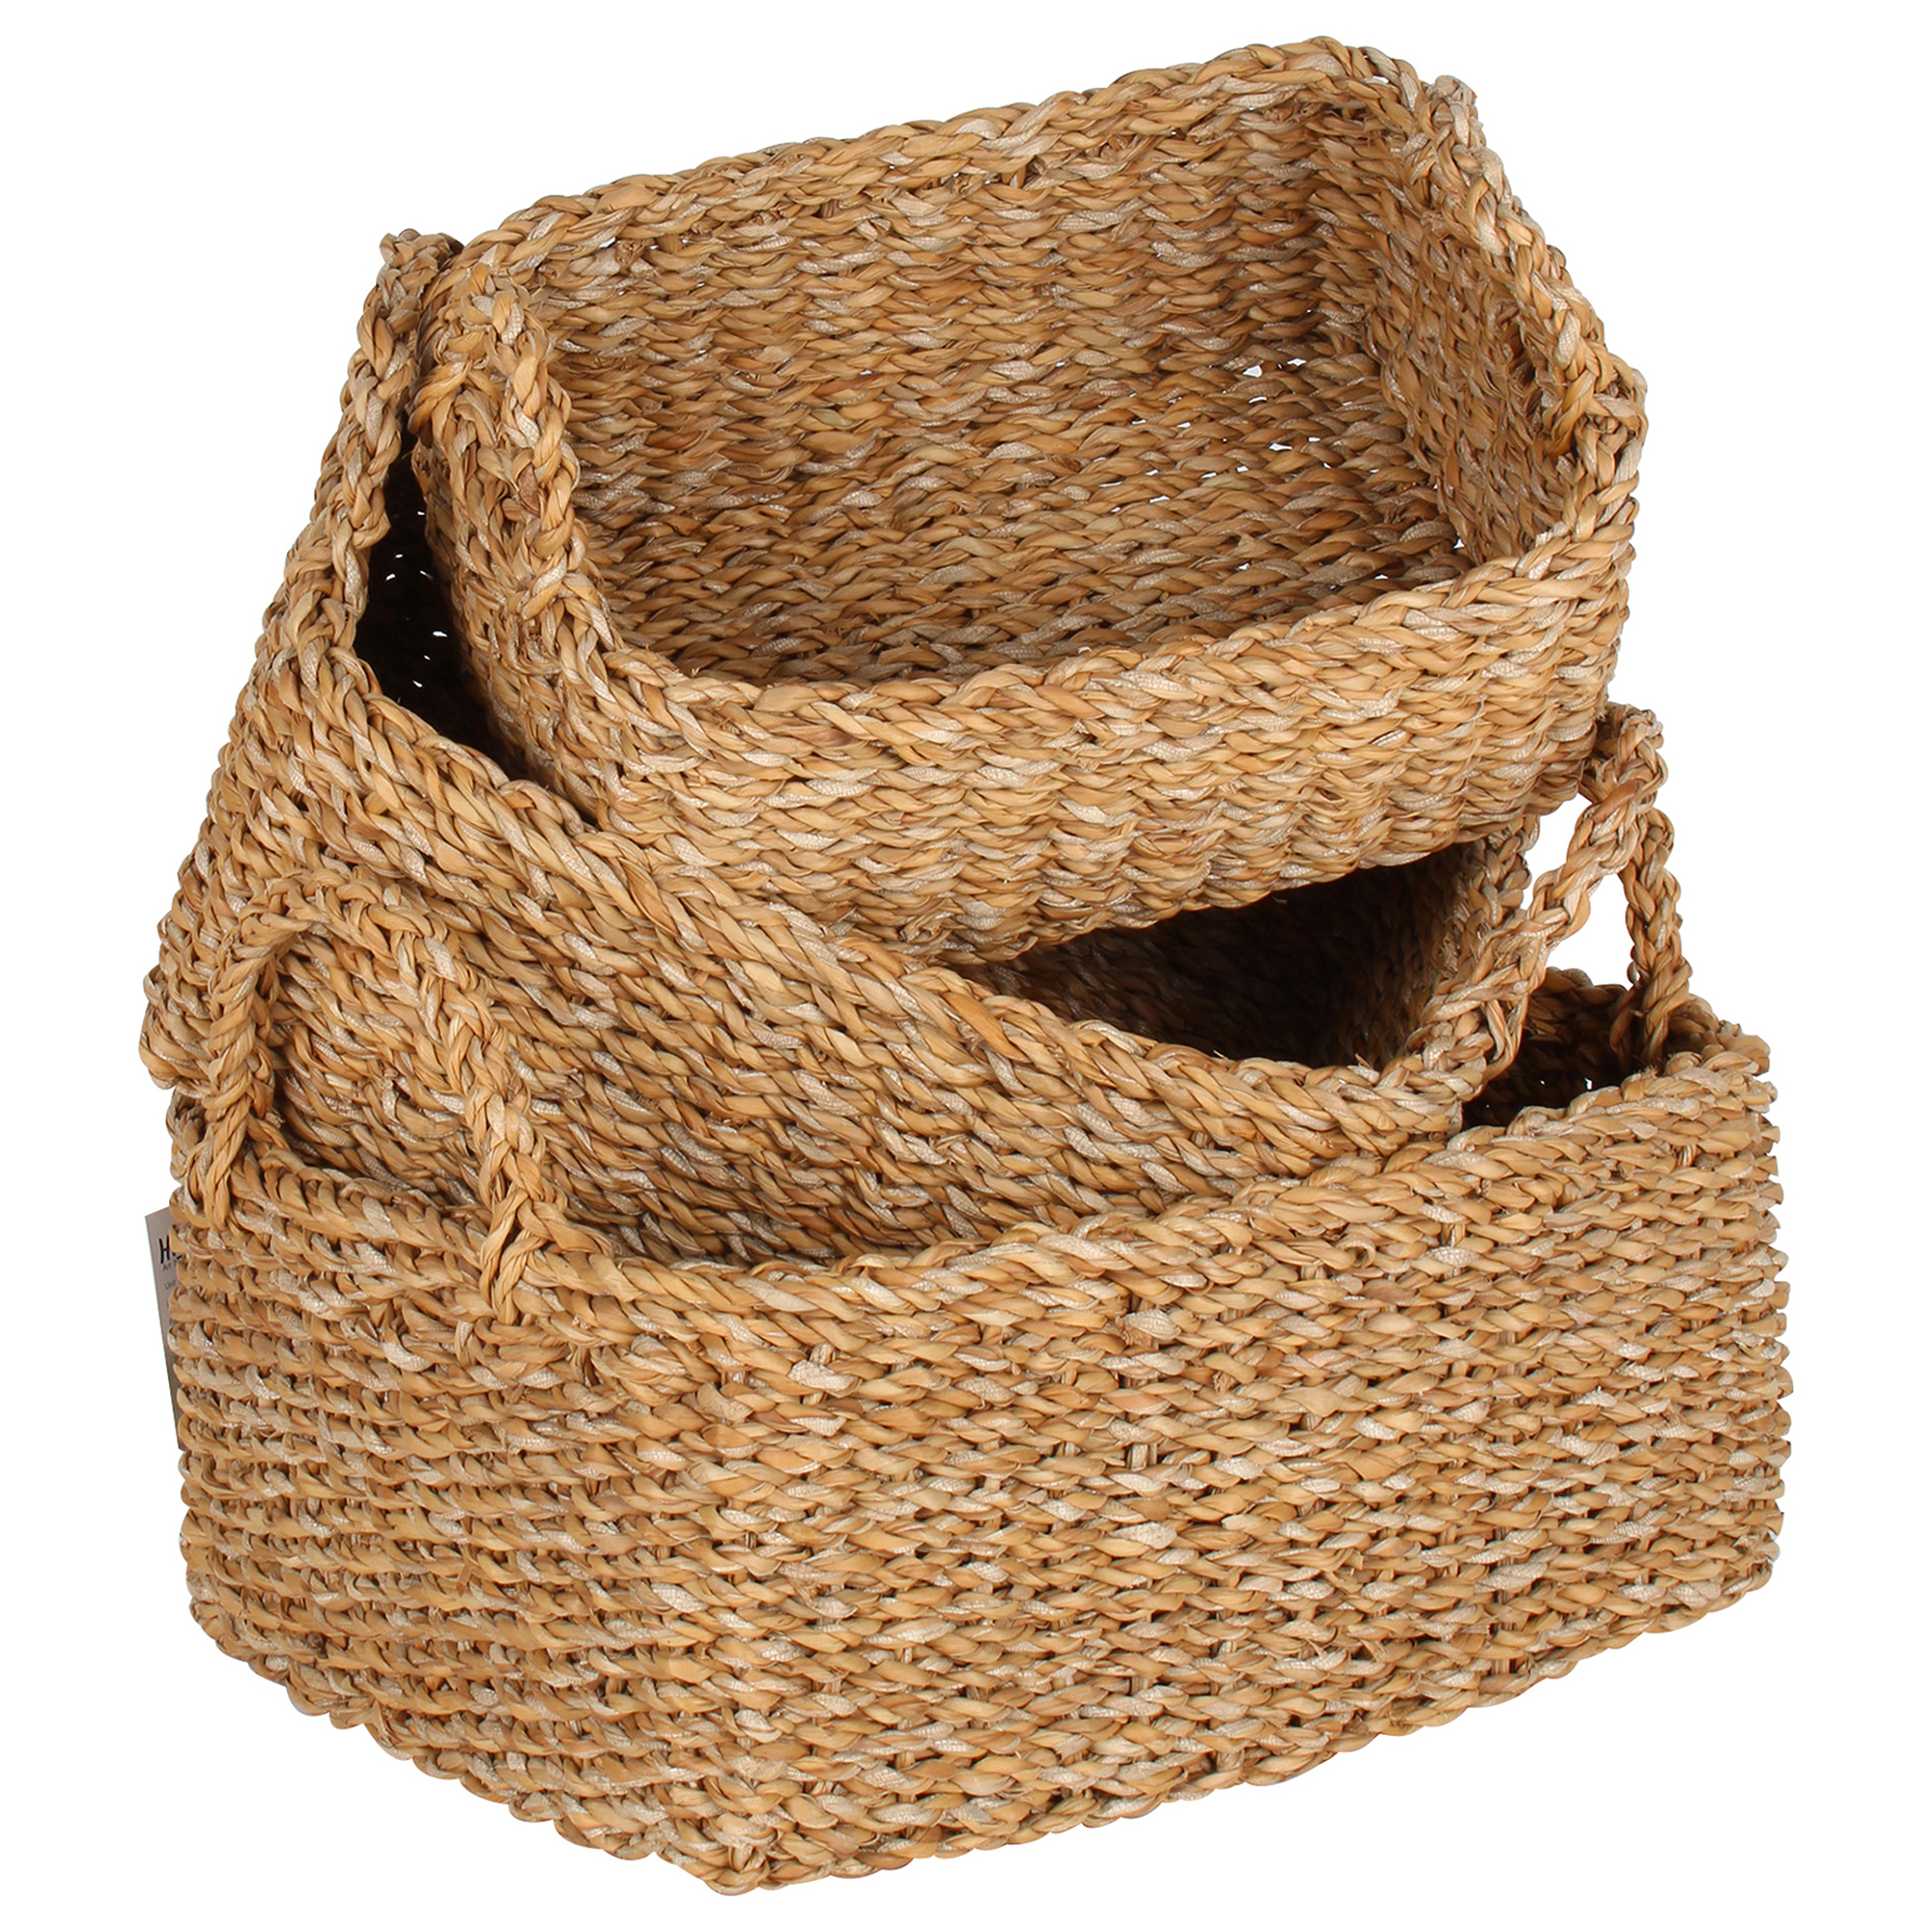 Home Décor Items 15cm Small Square Seagrass Baskets Makeup Product Toiletries Collectors Bedroom Home Furniture Diy Sistemadeensinoph Com Br